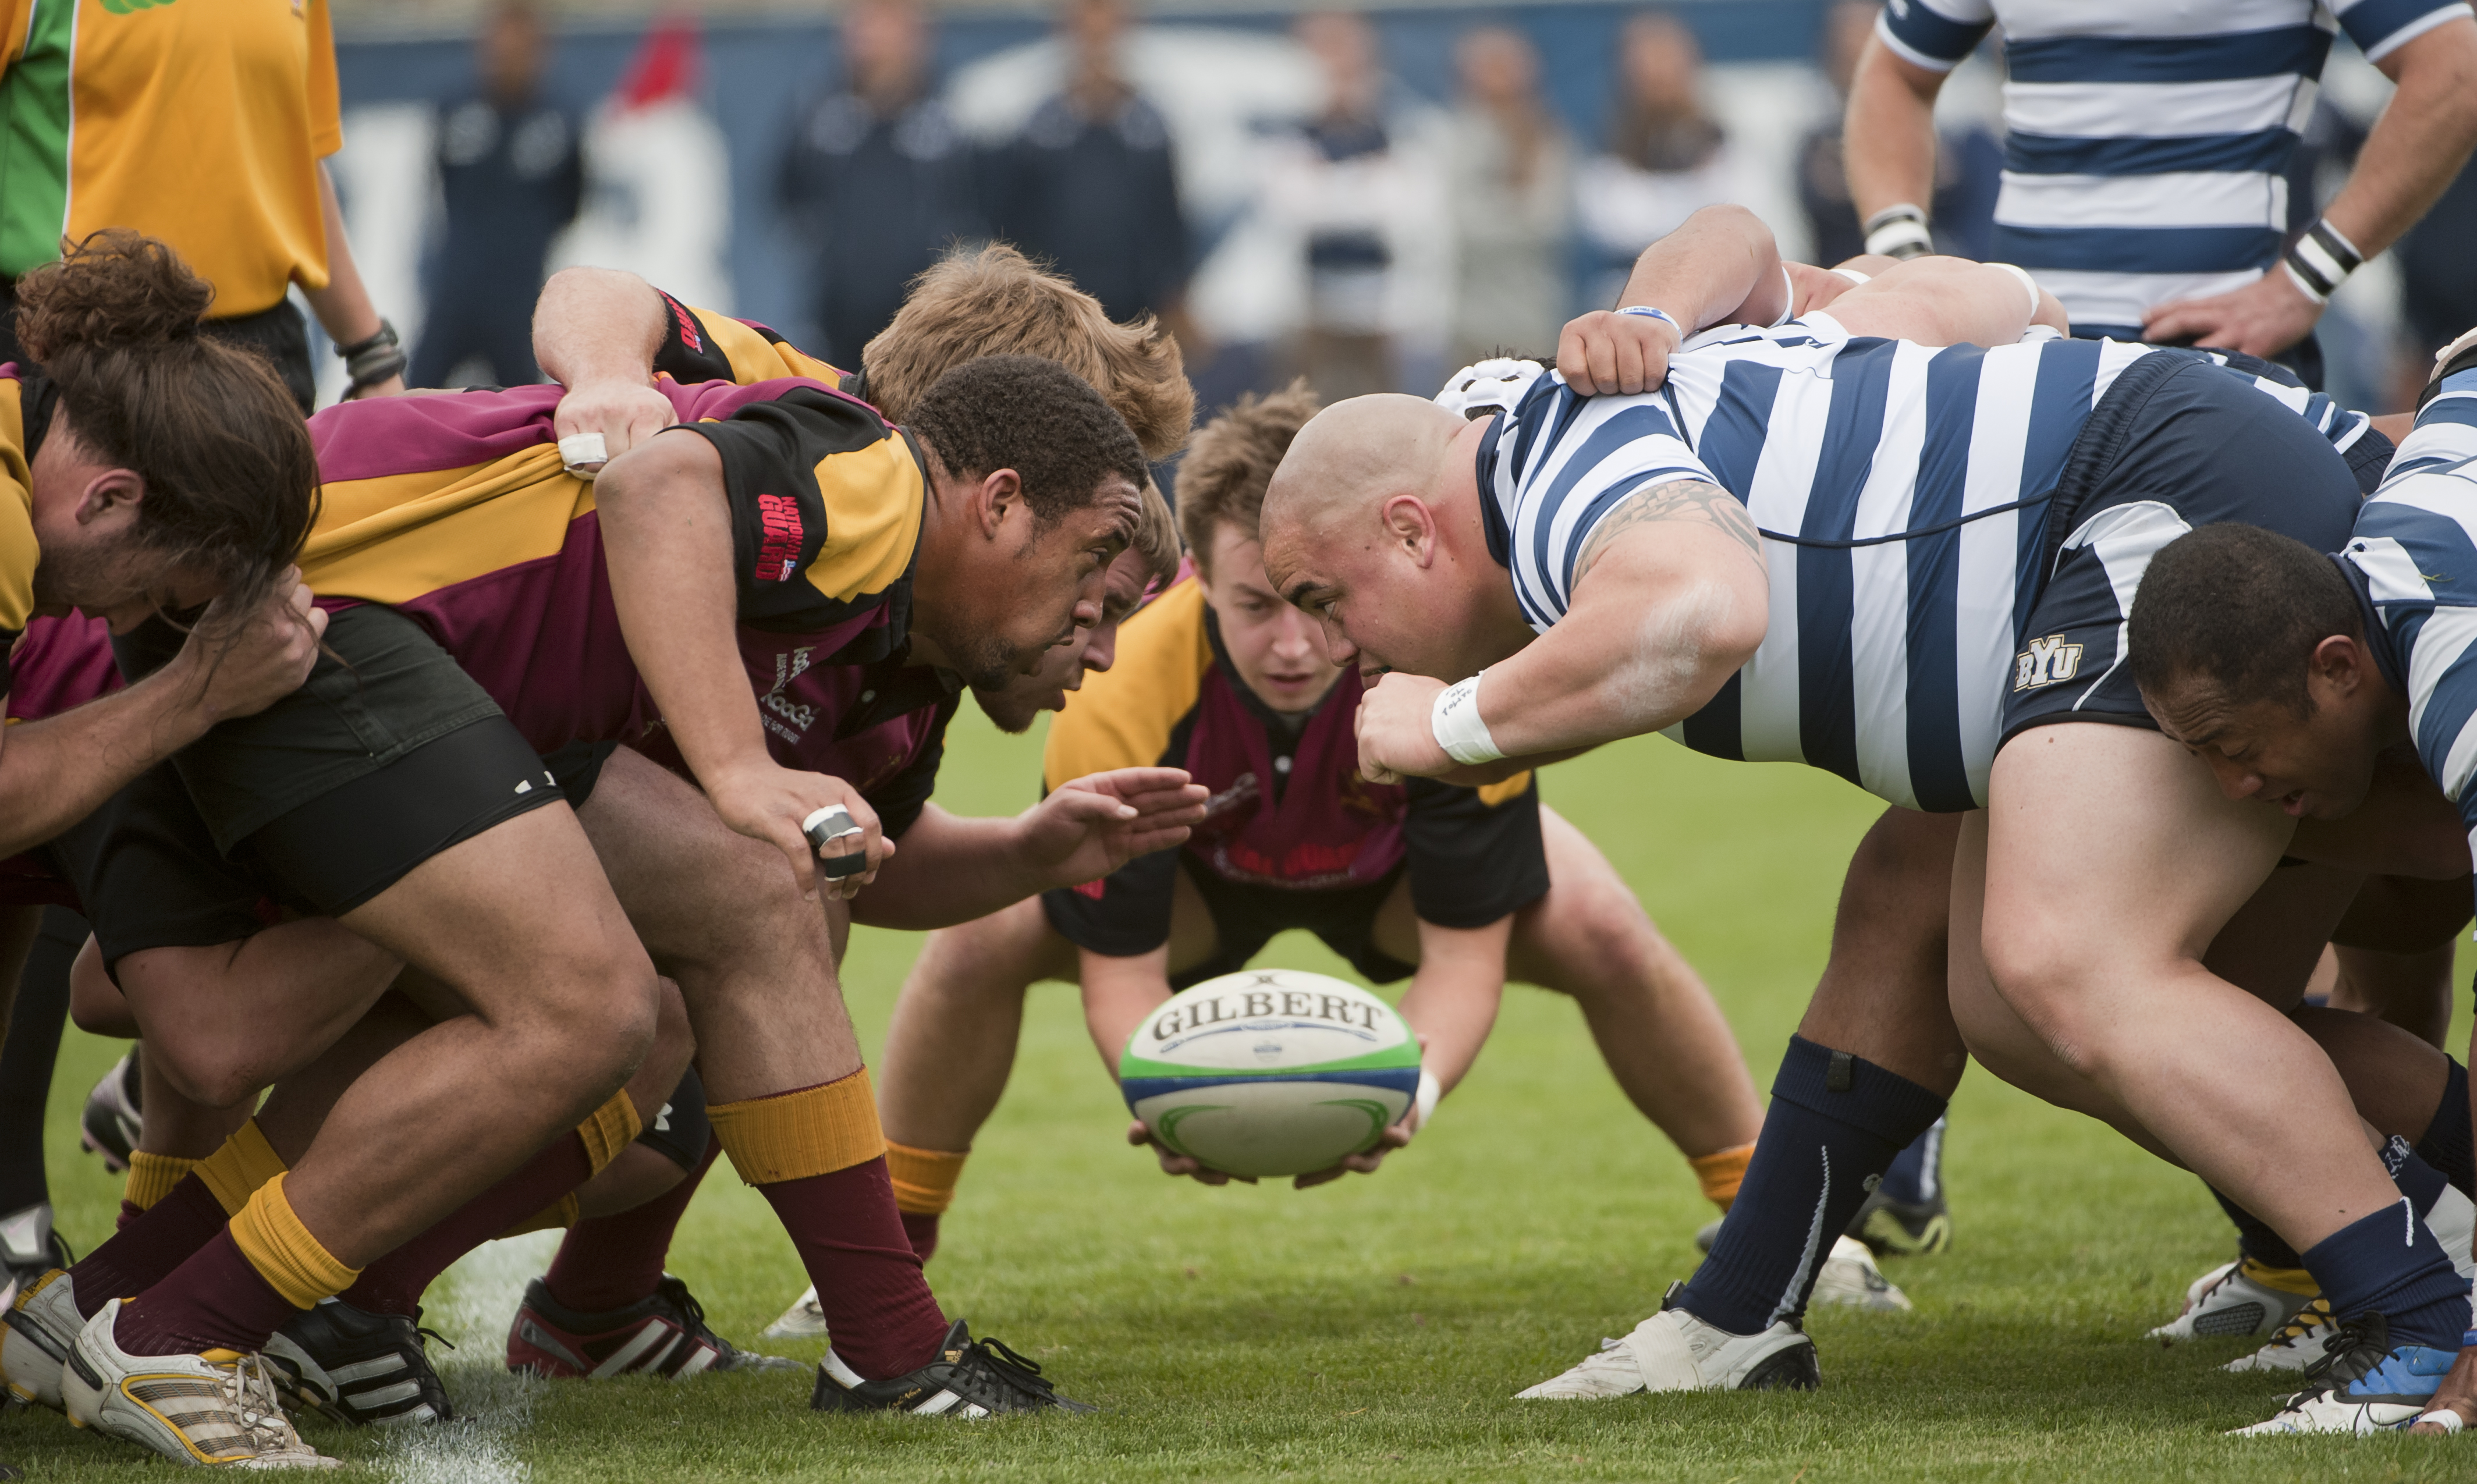 BYU rugby heads to Las Vegas to meet Texas A&M - The Daily ...